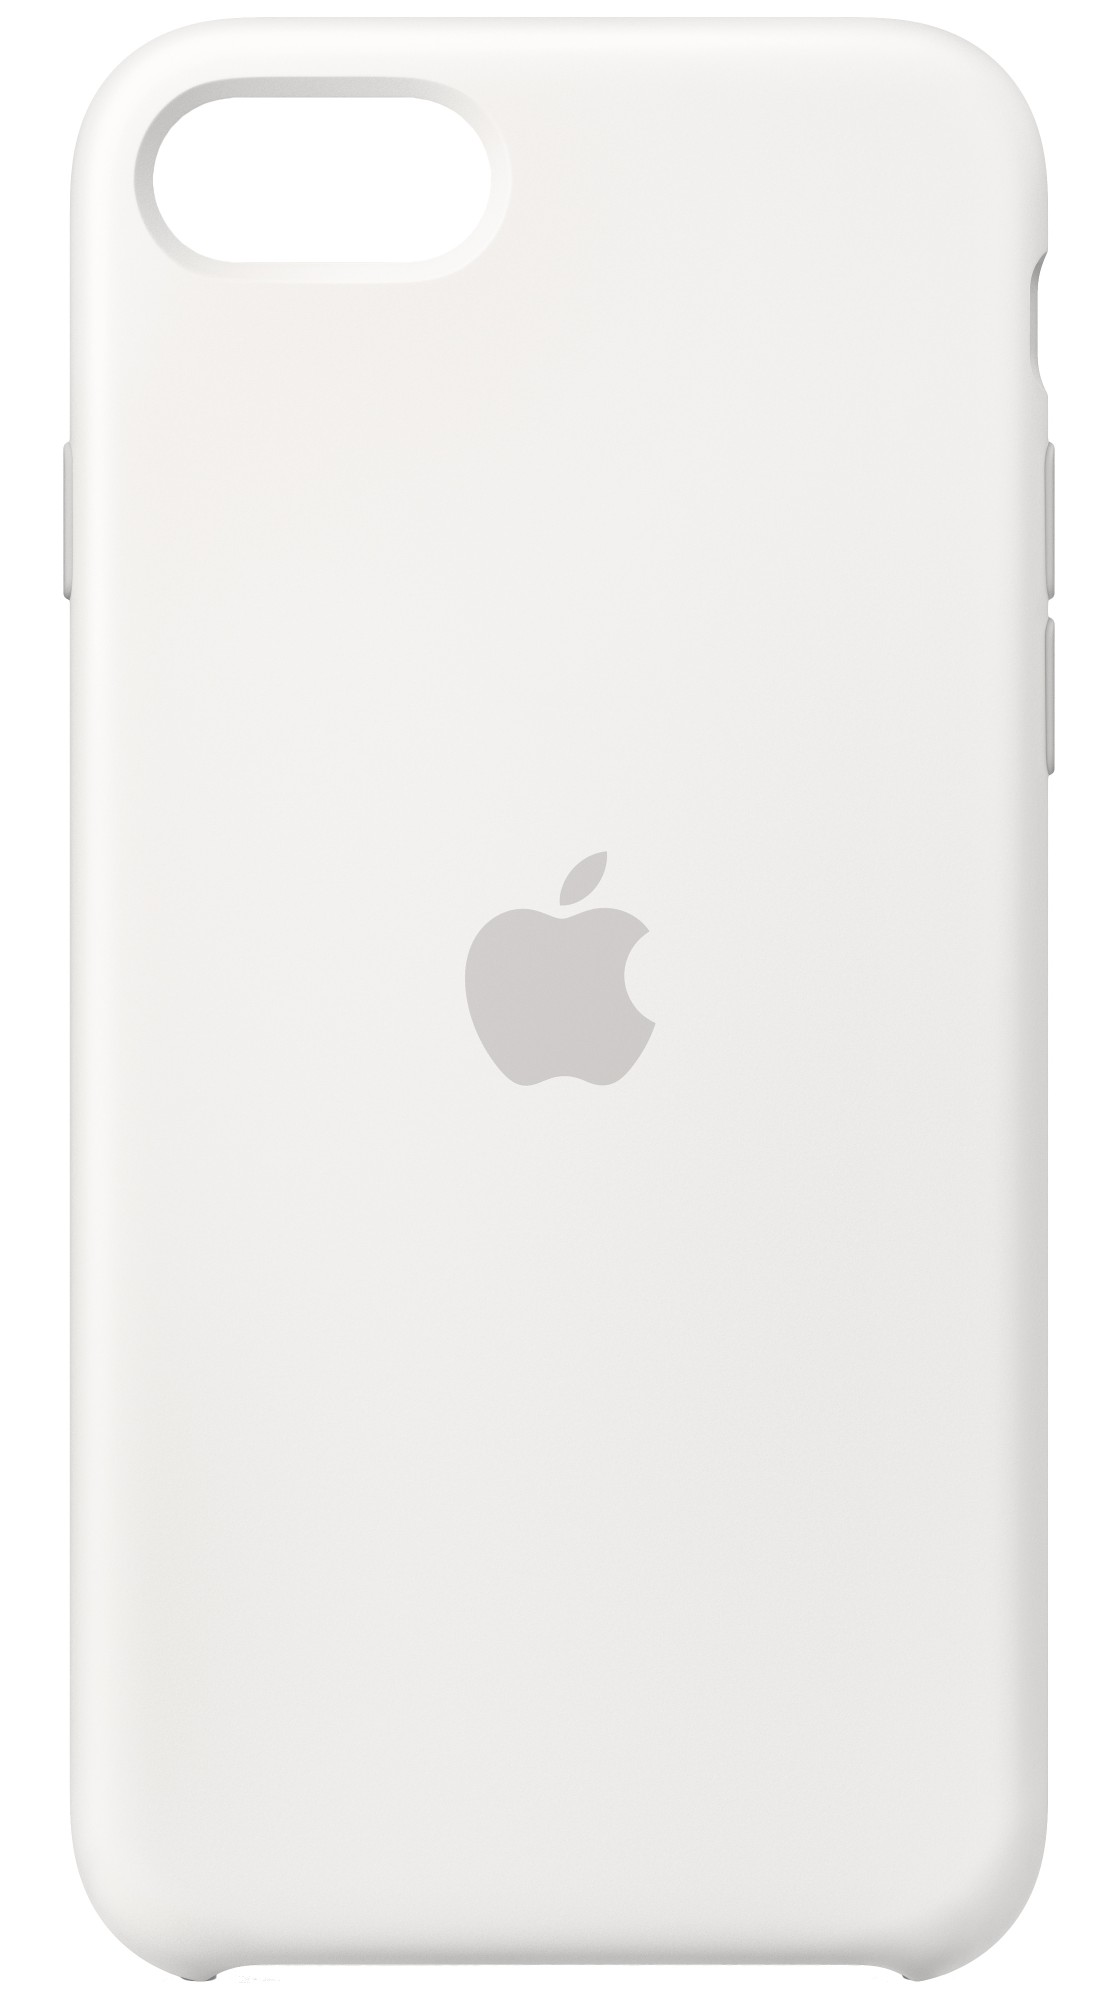 "Apple iPhone SE Silicone Case - White funda para teléfono móvil 11,9 cm (4.7"") Blanco"